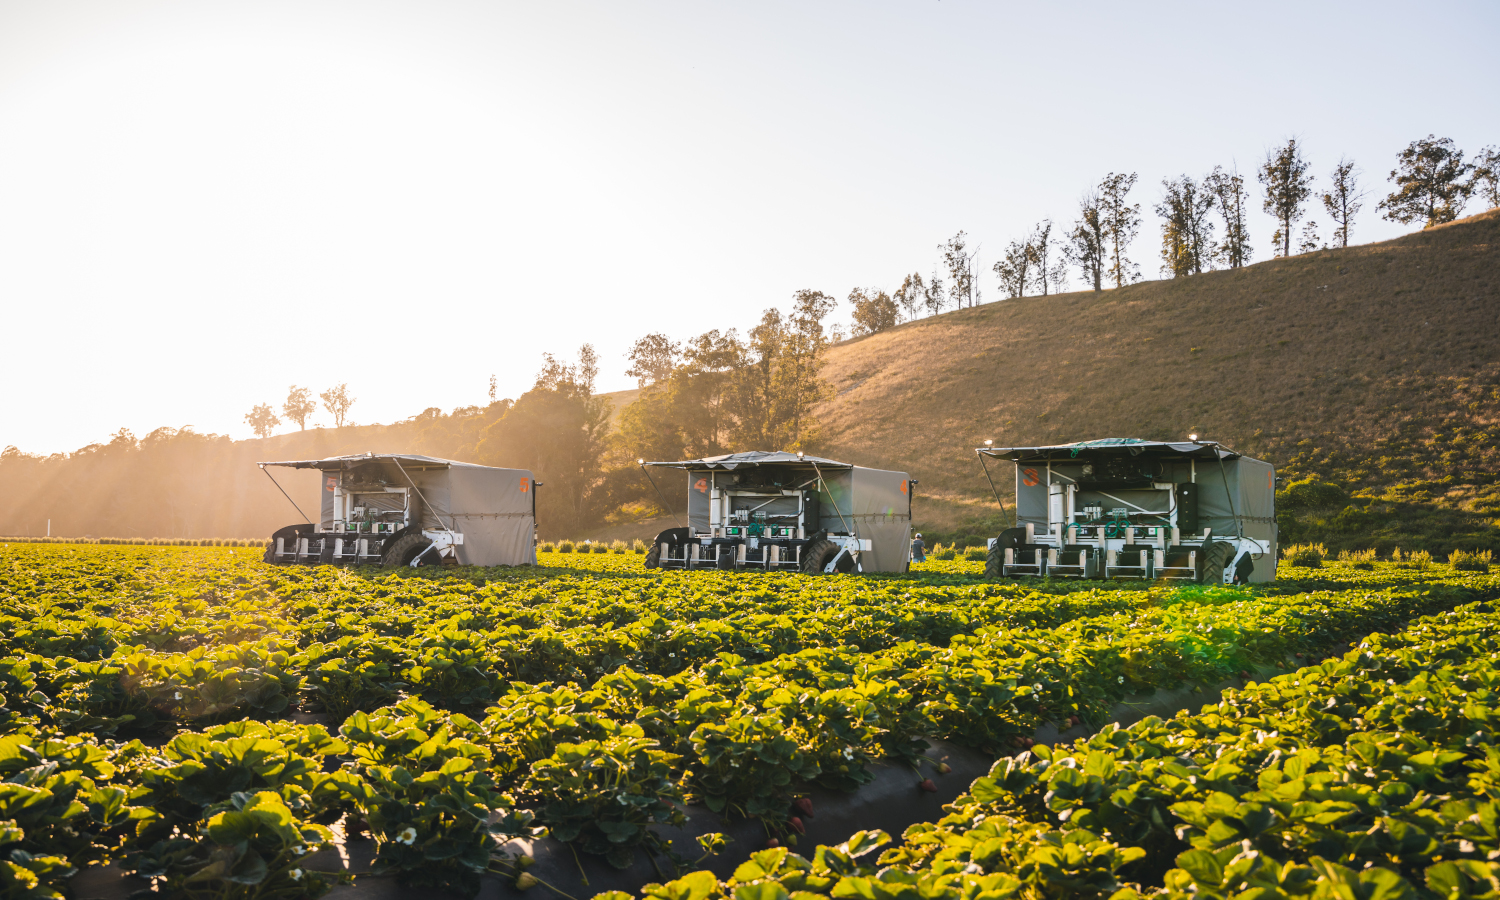 advanced.farm has created a prototype automated harvester to farm berries and could change the way berry farming is conducted.